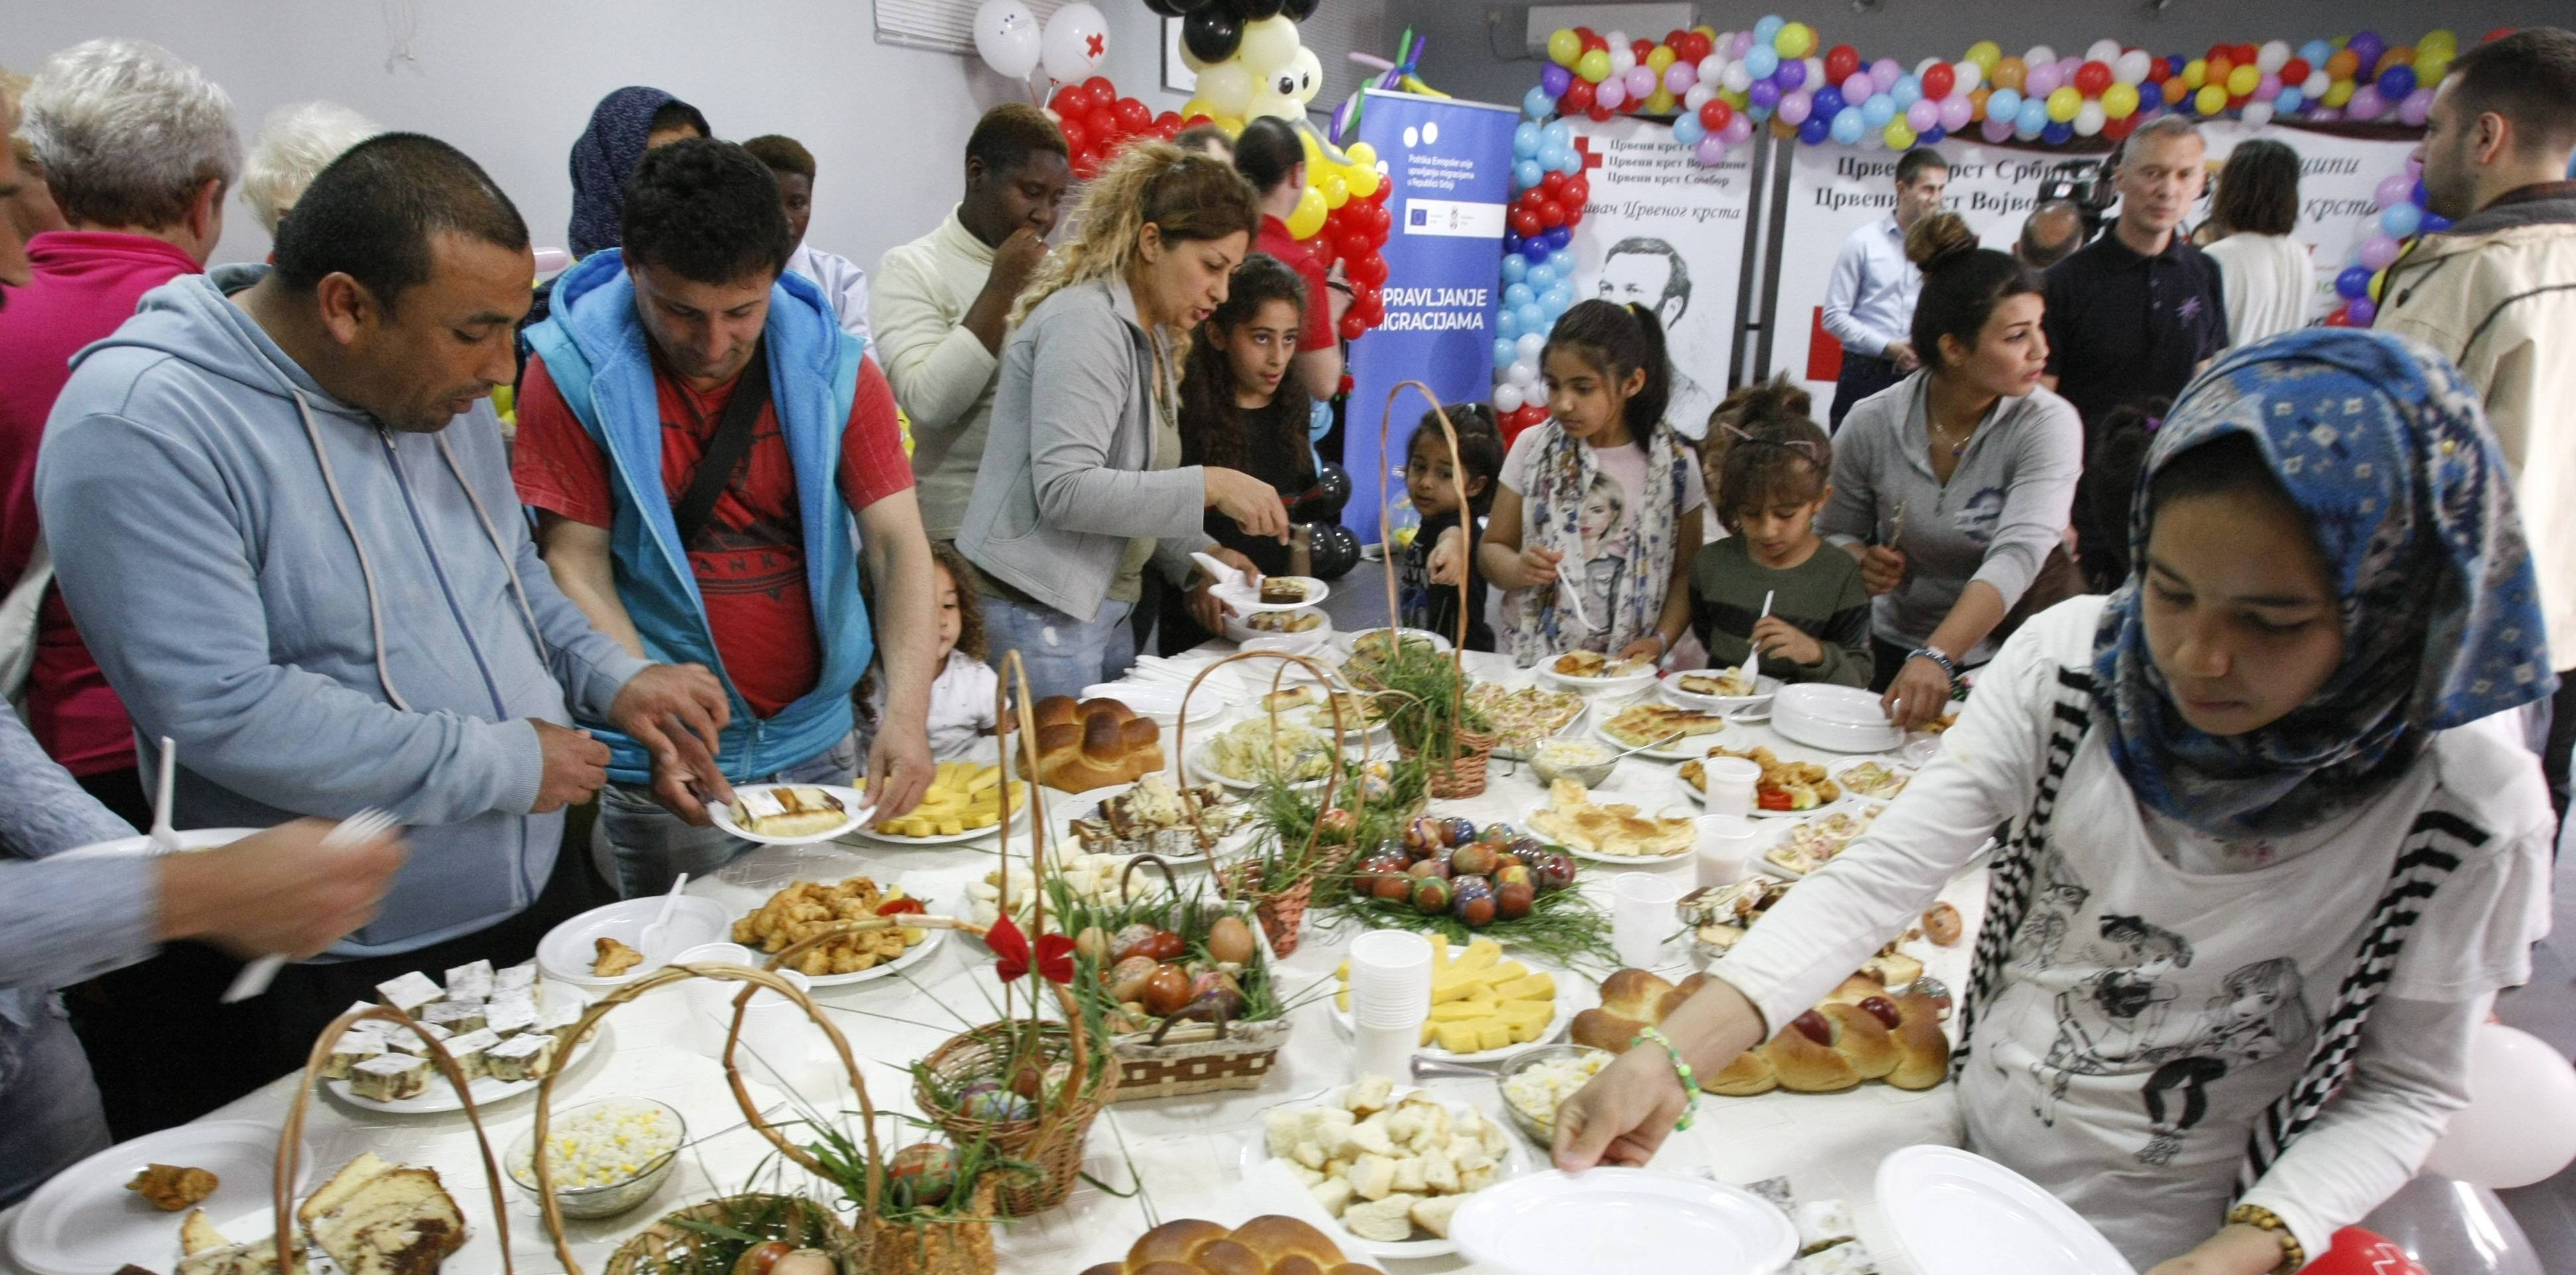 Event organized in Sombor to mark the upcoming Easter holidays